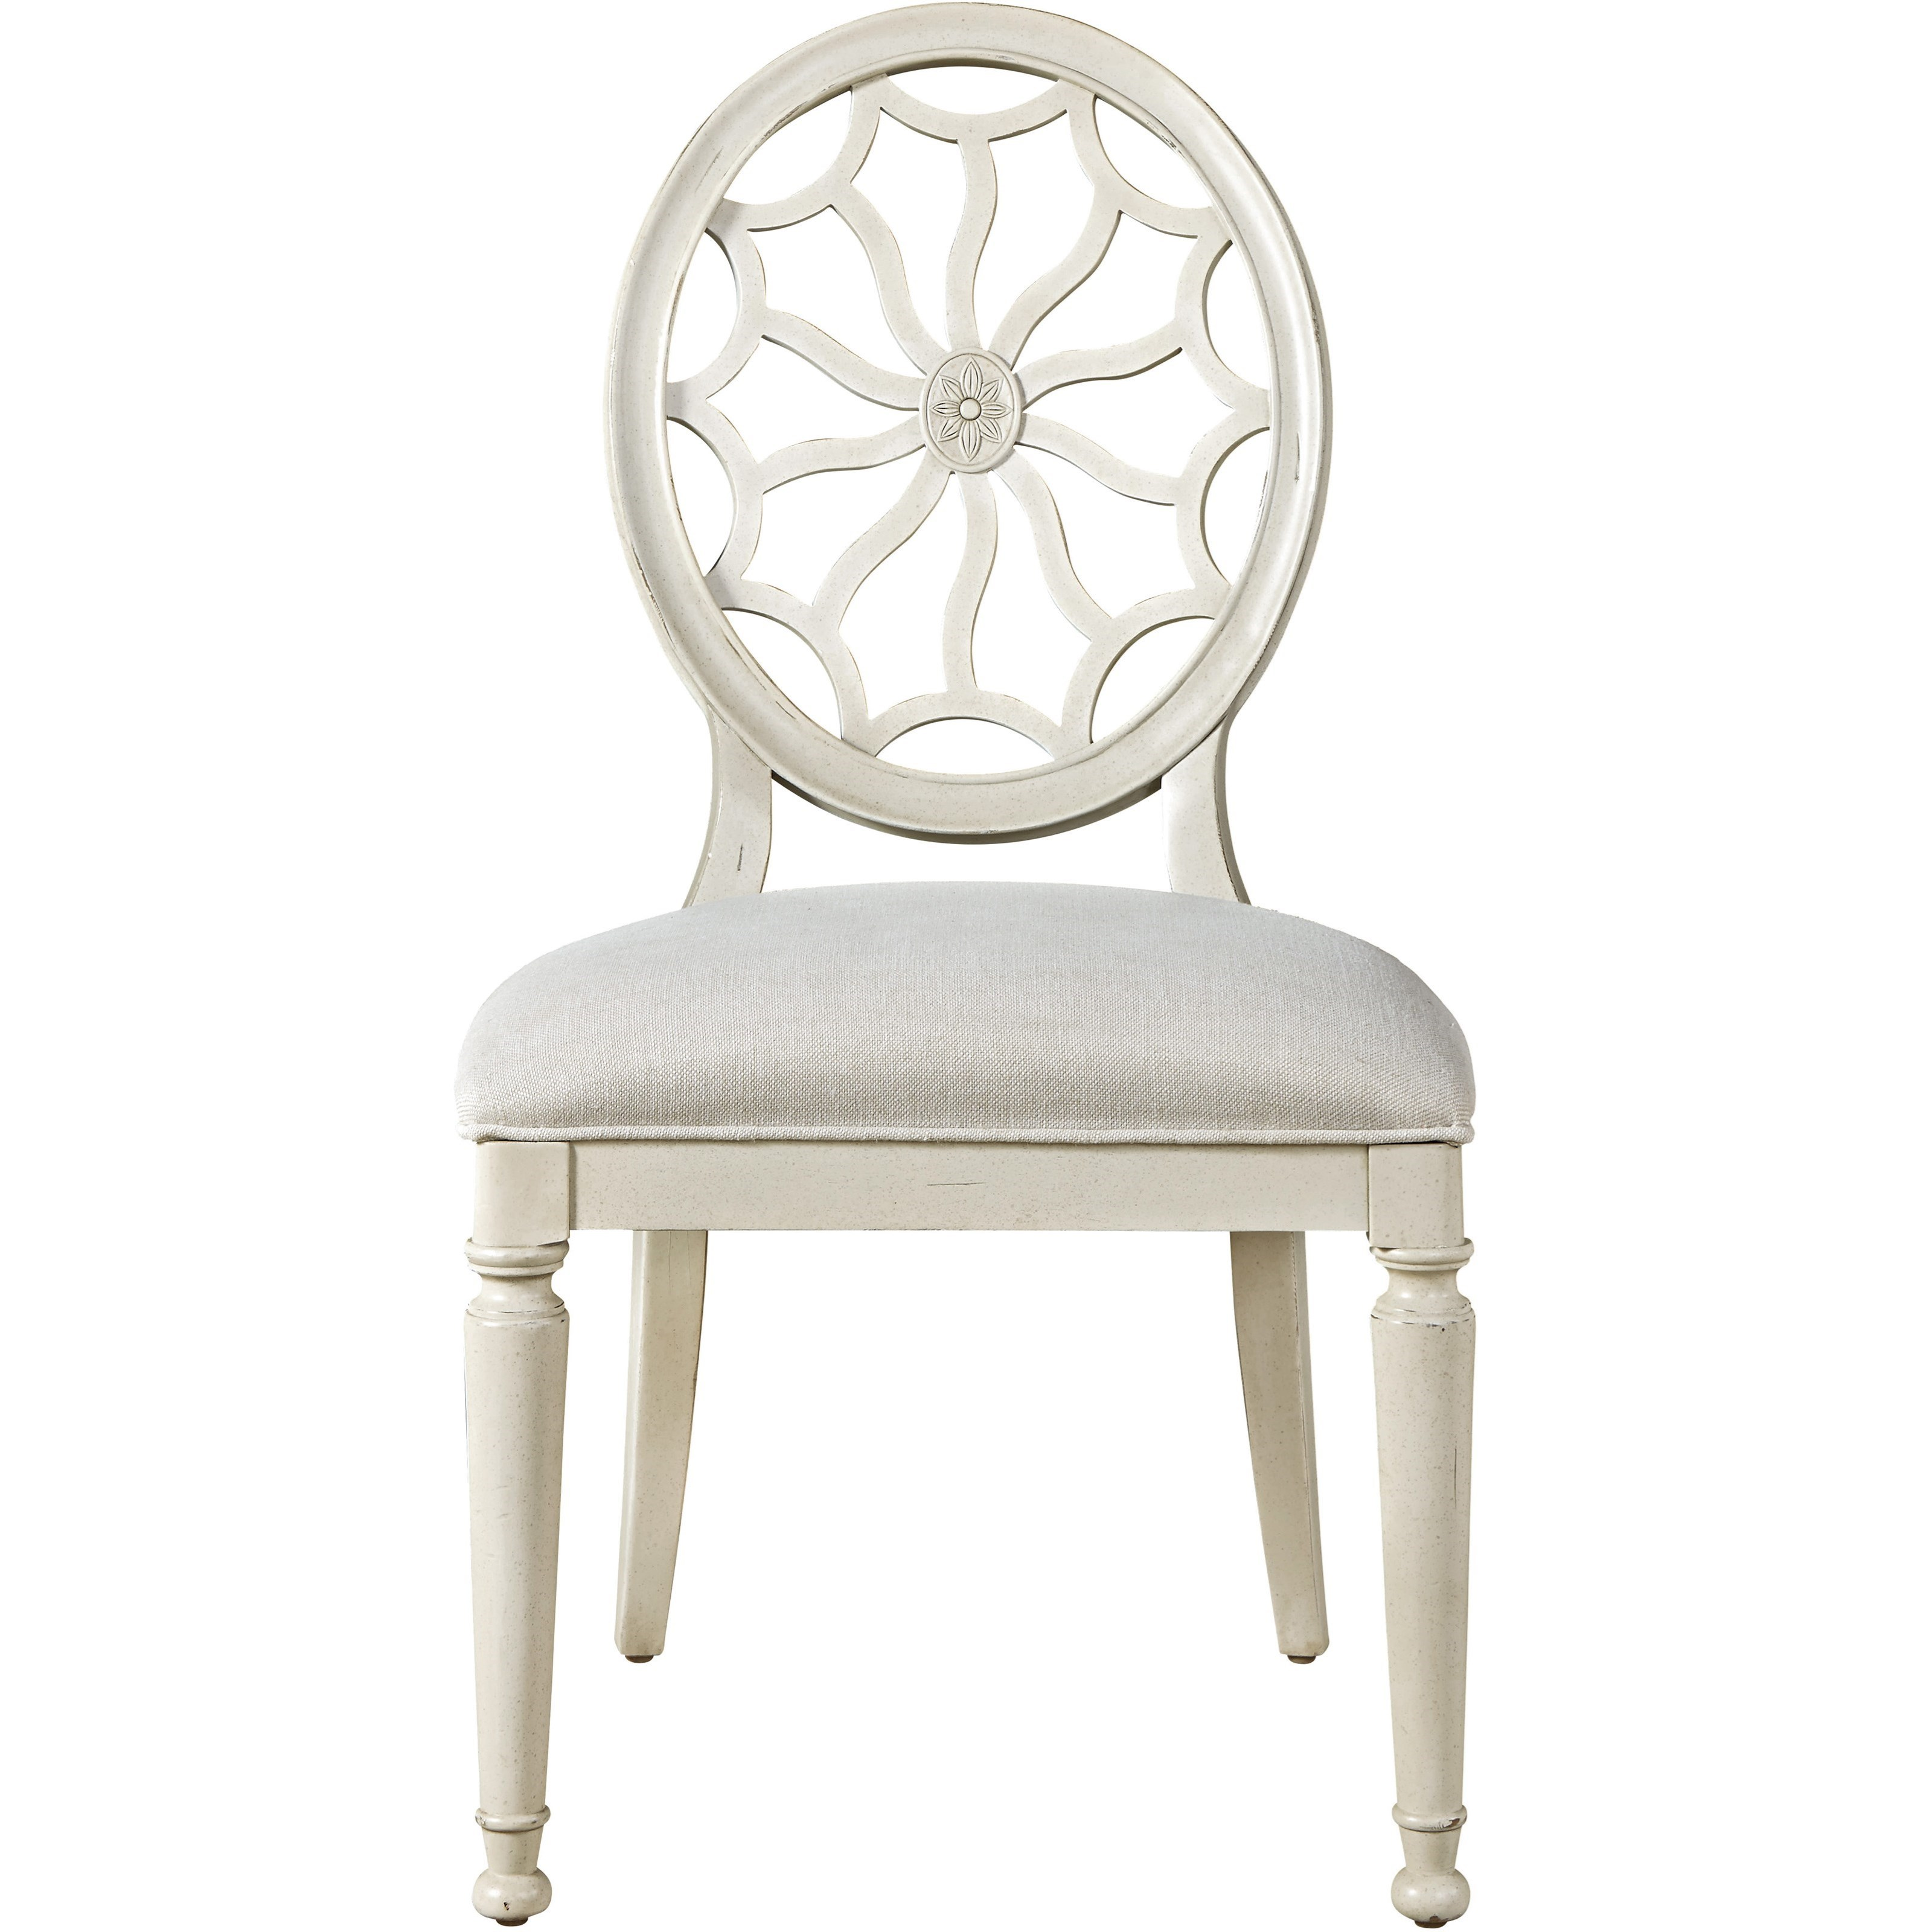 Universal Sojourn Side Chair - Item Number: 543A634-RTA